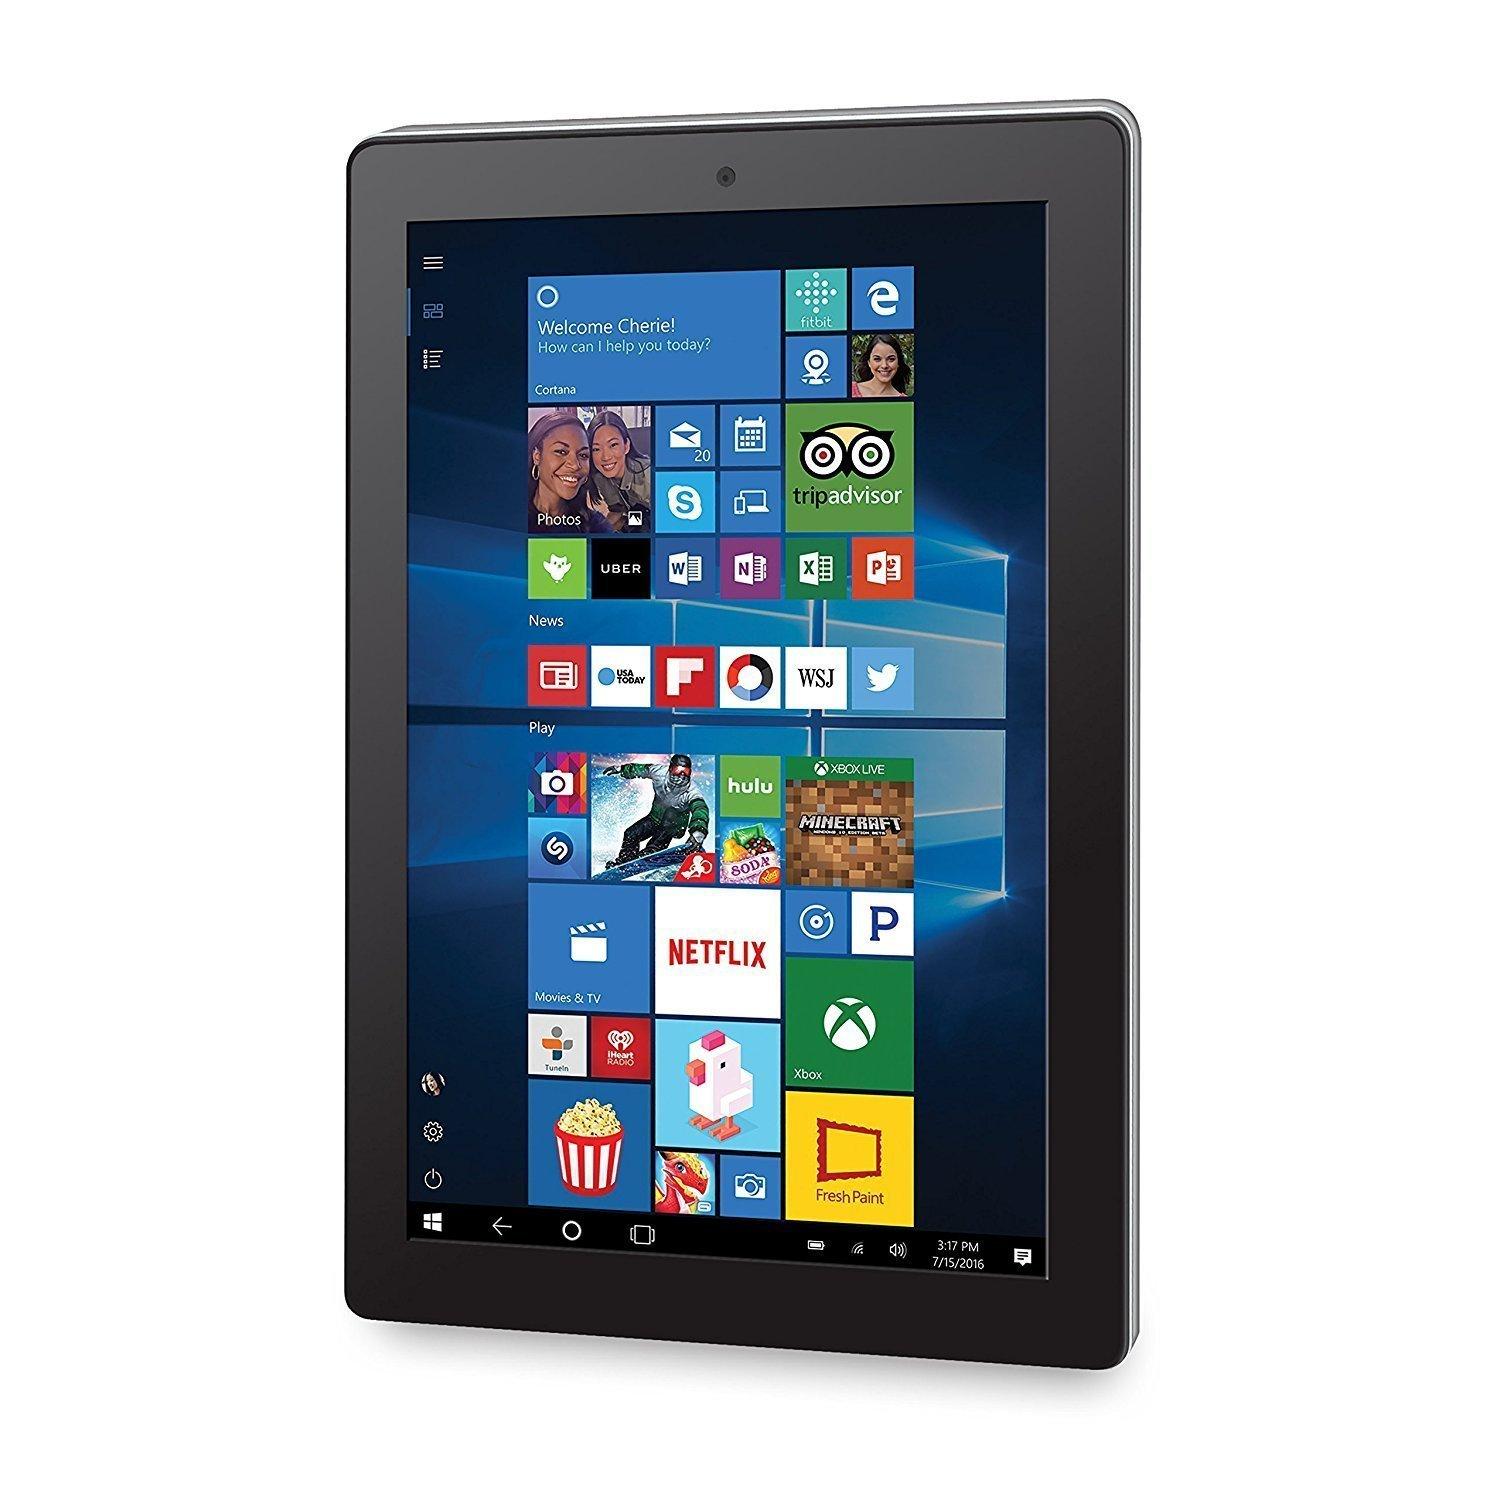 47b4c59f1179 The 2018 RCA Cambio 10 2-in-1 Tablet PC 10.1 high-resolution Windows Tablet  with a detachable keyboard. Powered by an Intel Atom Z8350 Quad-Core  processor